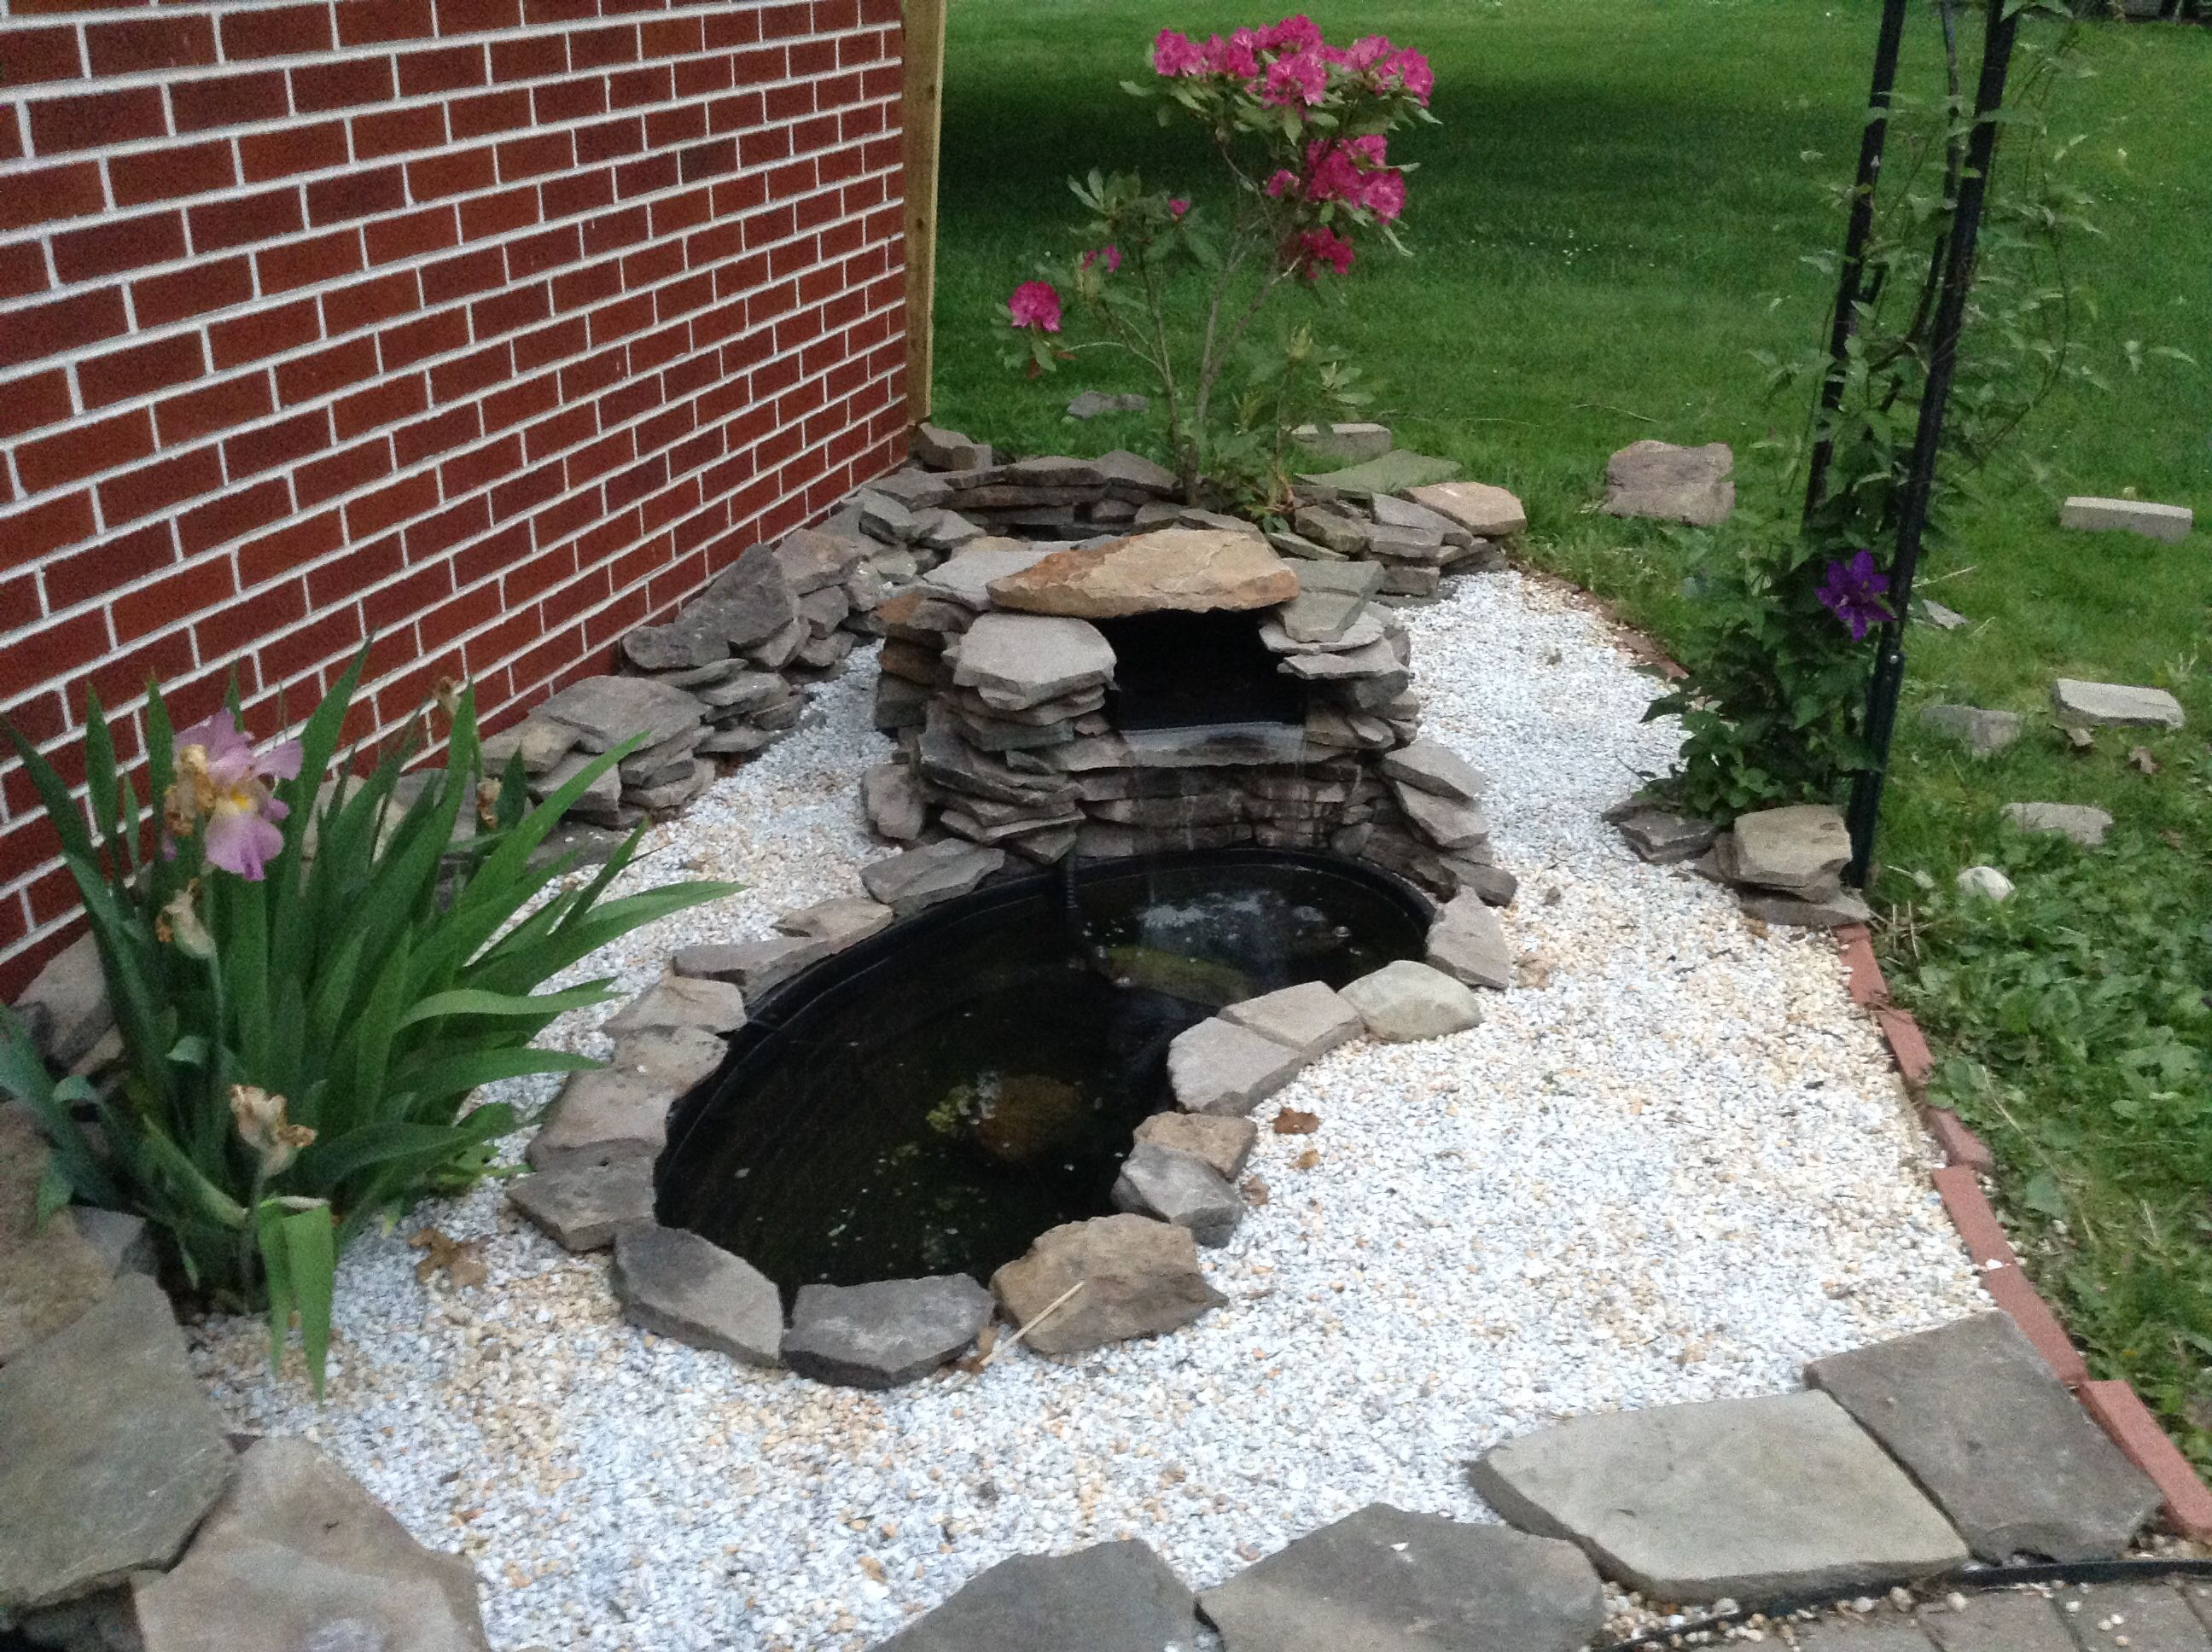 Fish pond designs pictures - Small Fish Pond With Pebbles And Stones And Waterfall